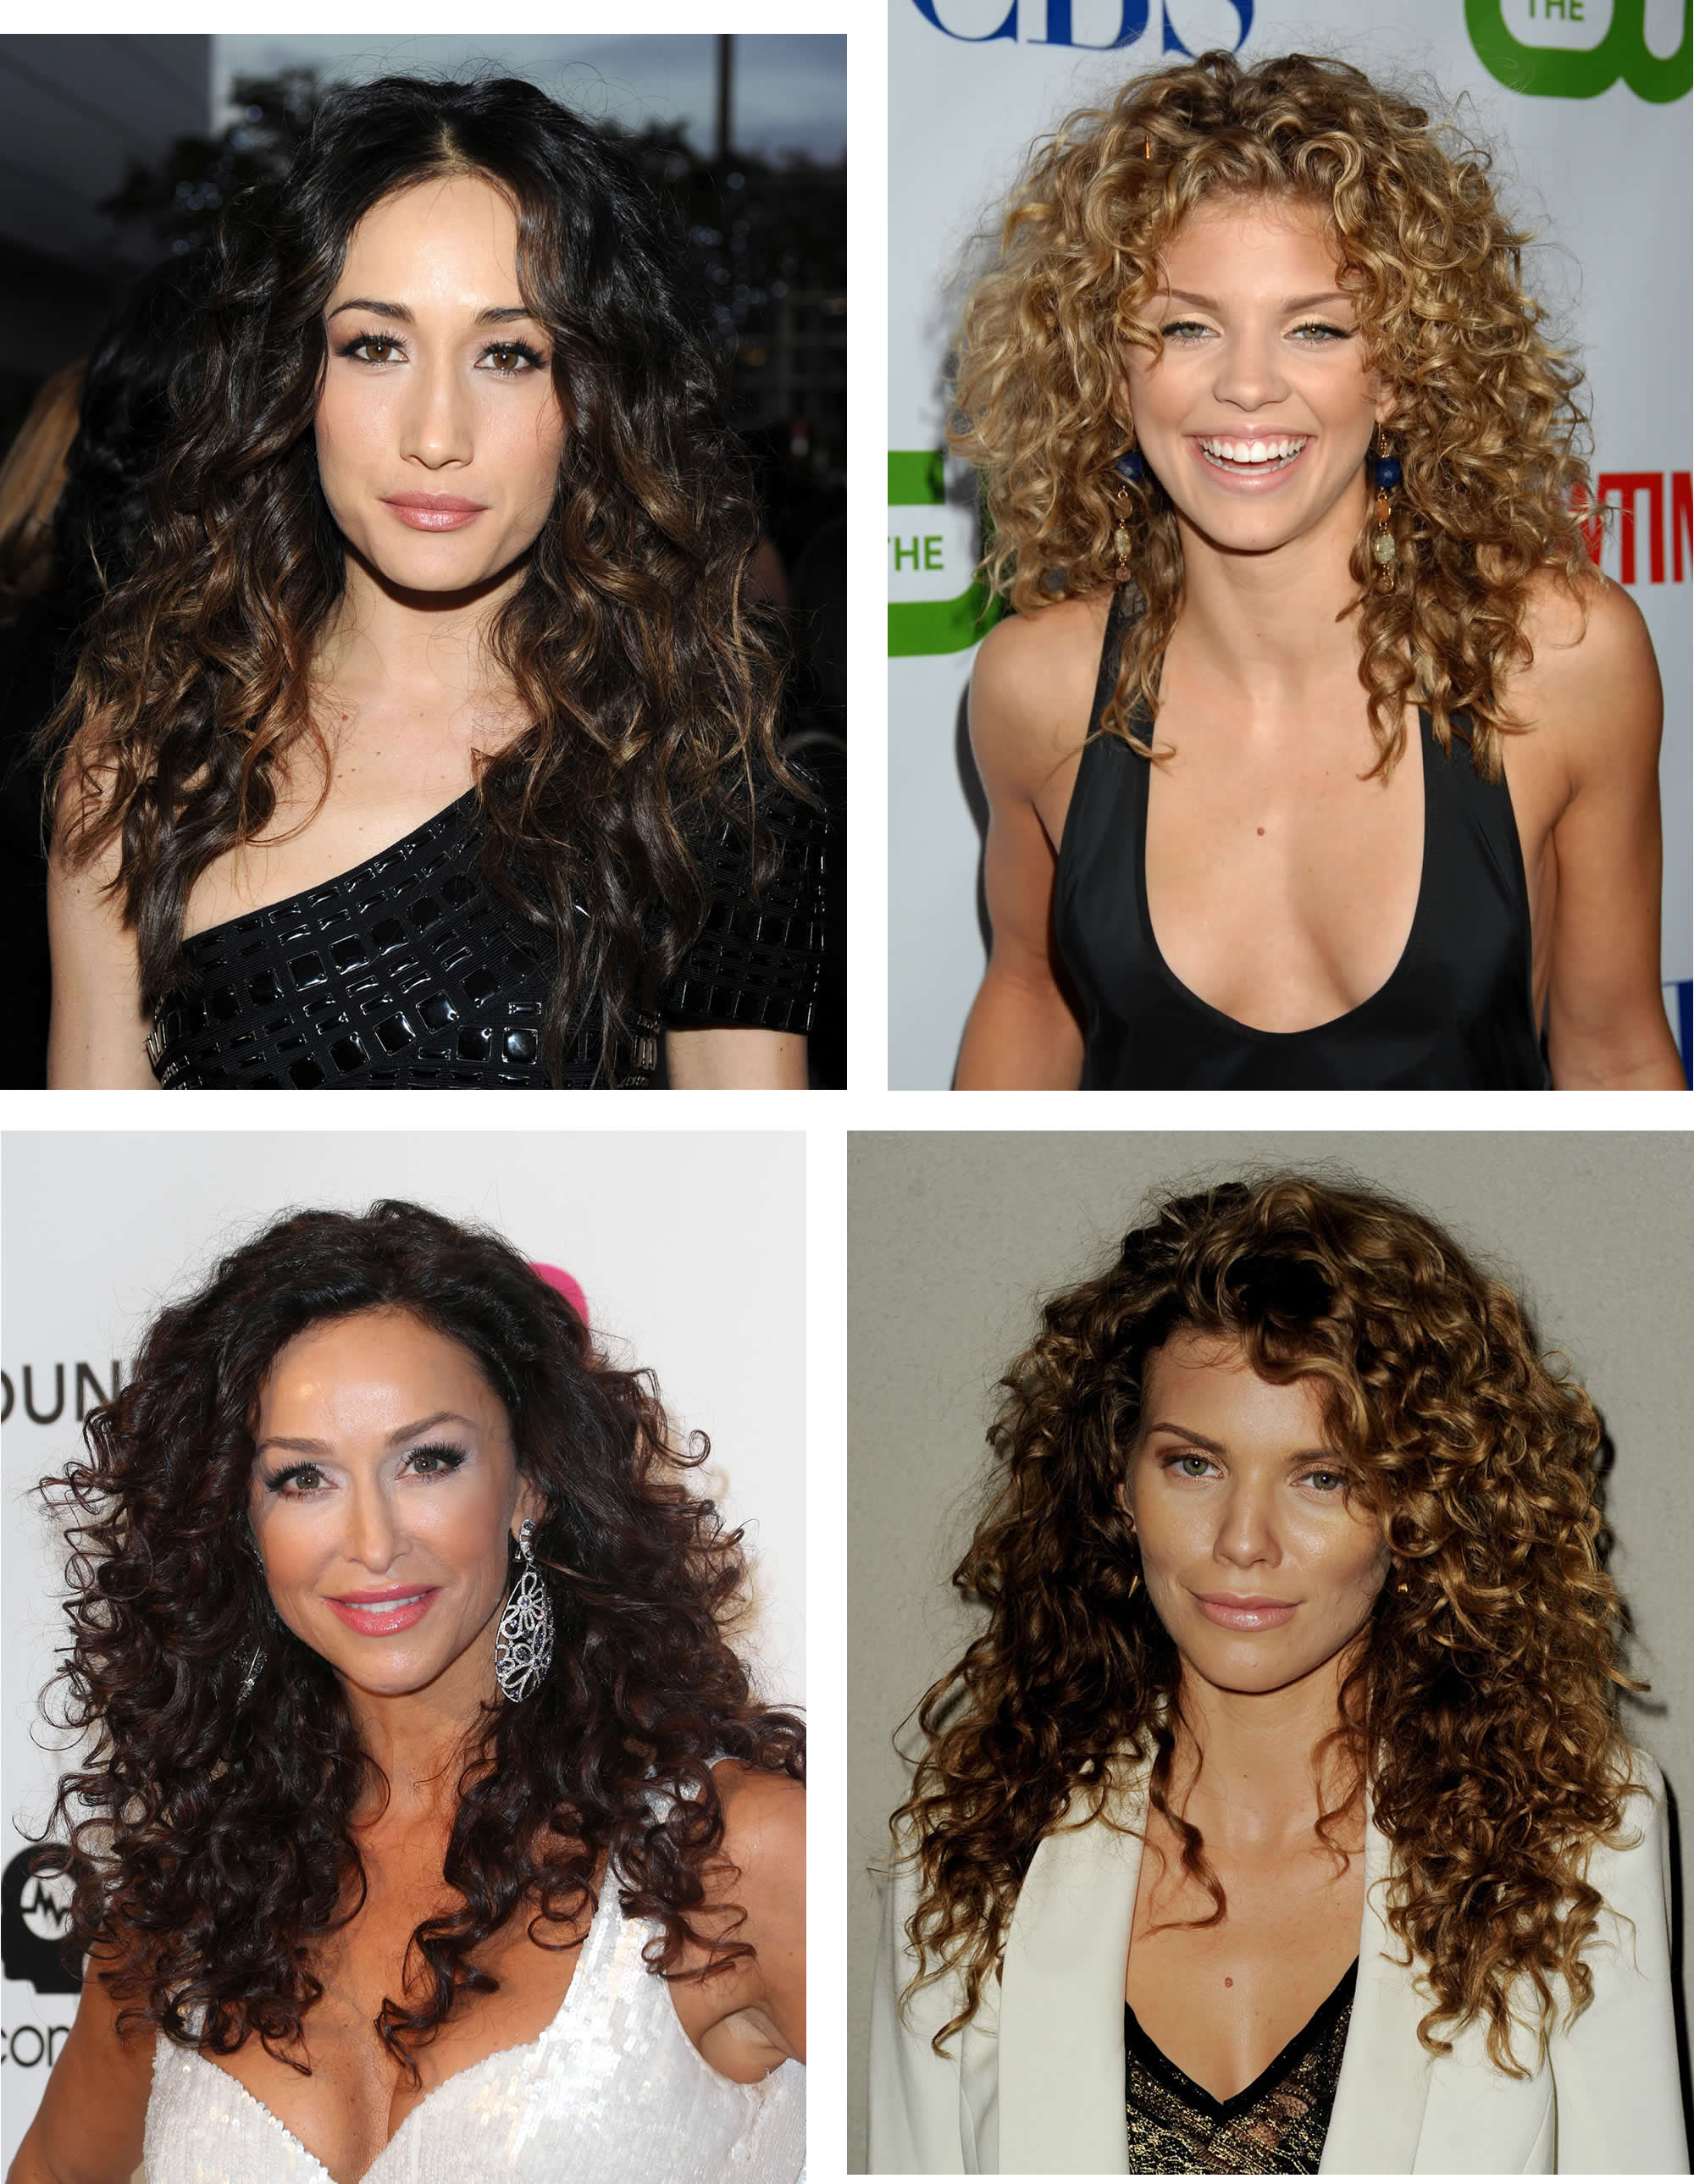 Hairstyles For Long Curly Hair Your Beauty 411